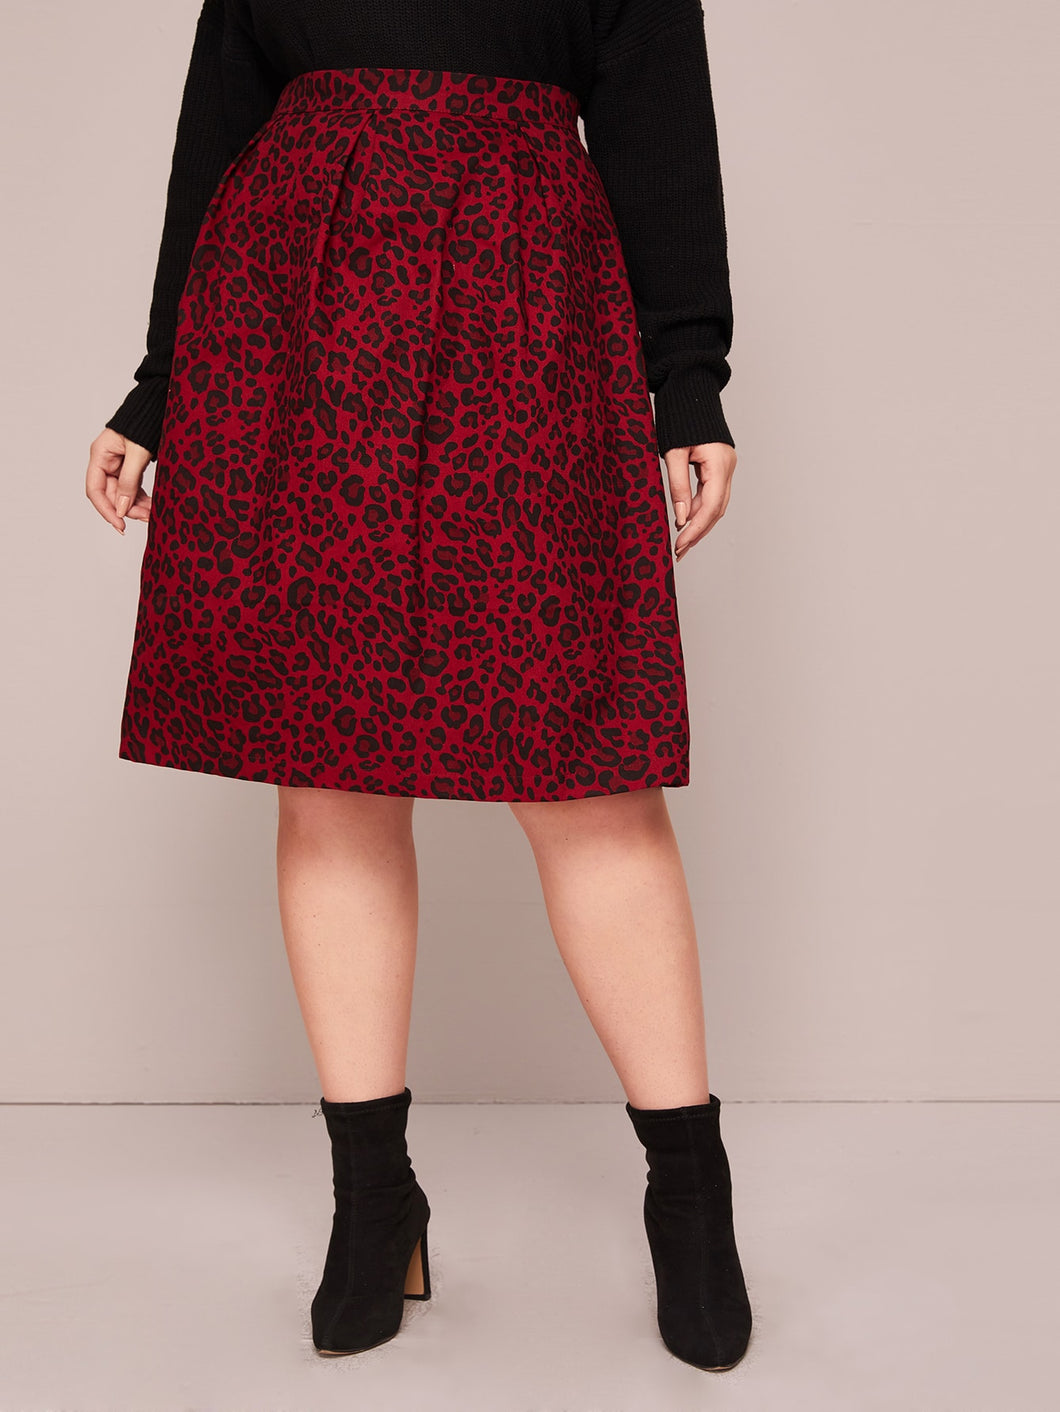 SKIRT Plus Allover Leopard Print Skirt - EK CHIC